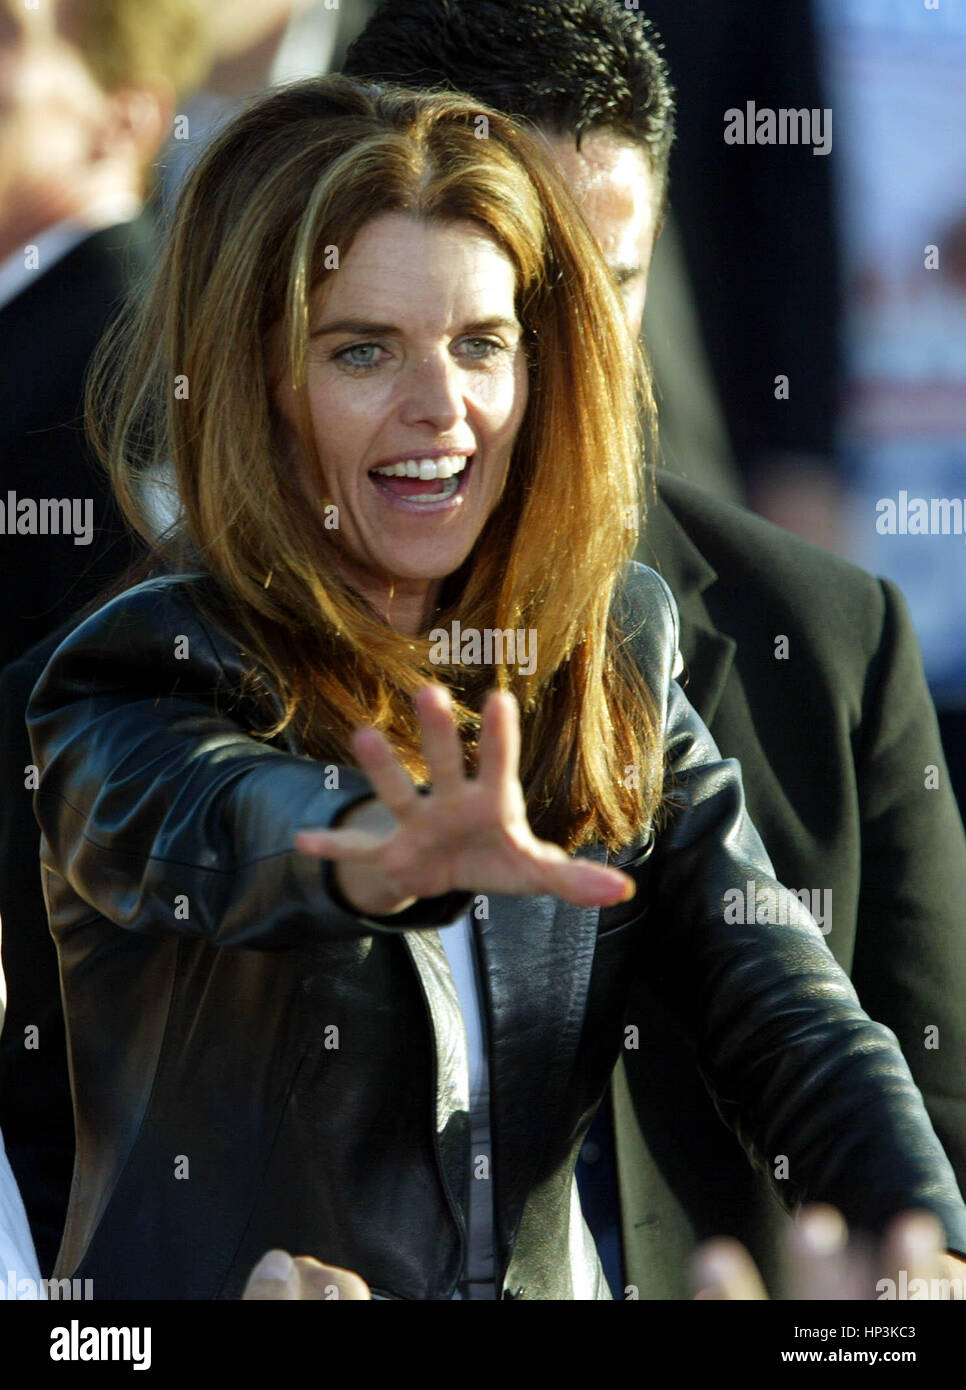 Maria Shriver, wife of California gubernatorial candidate